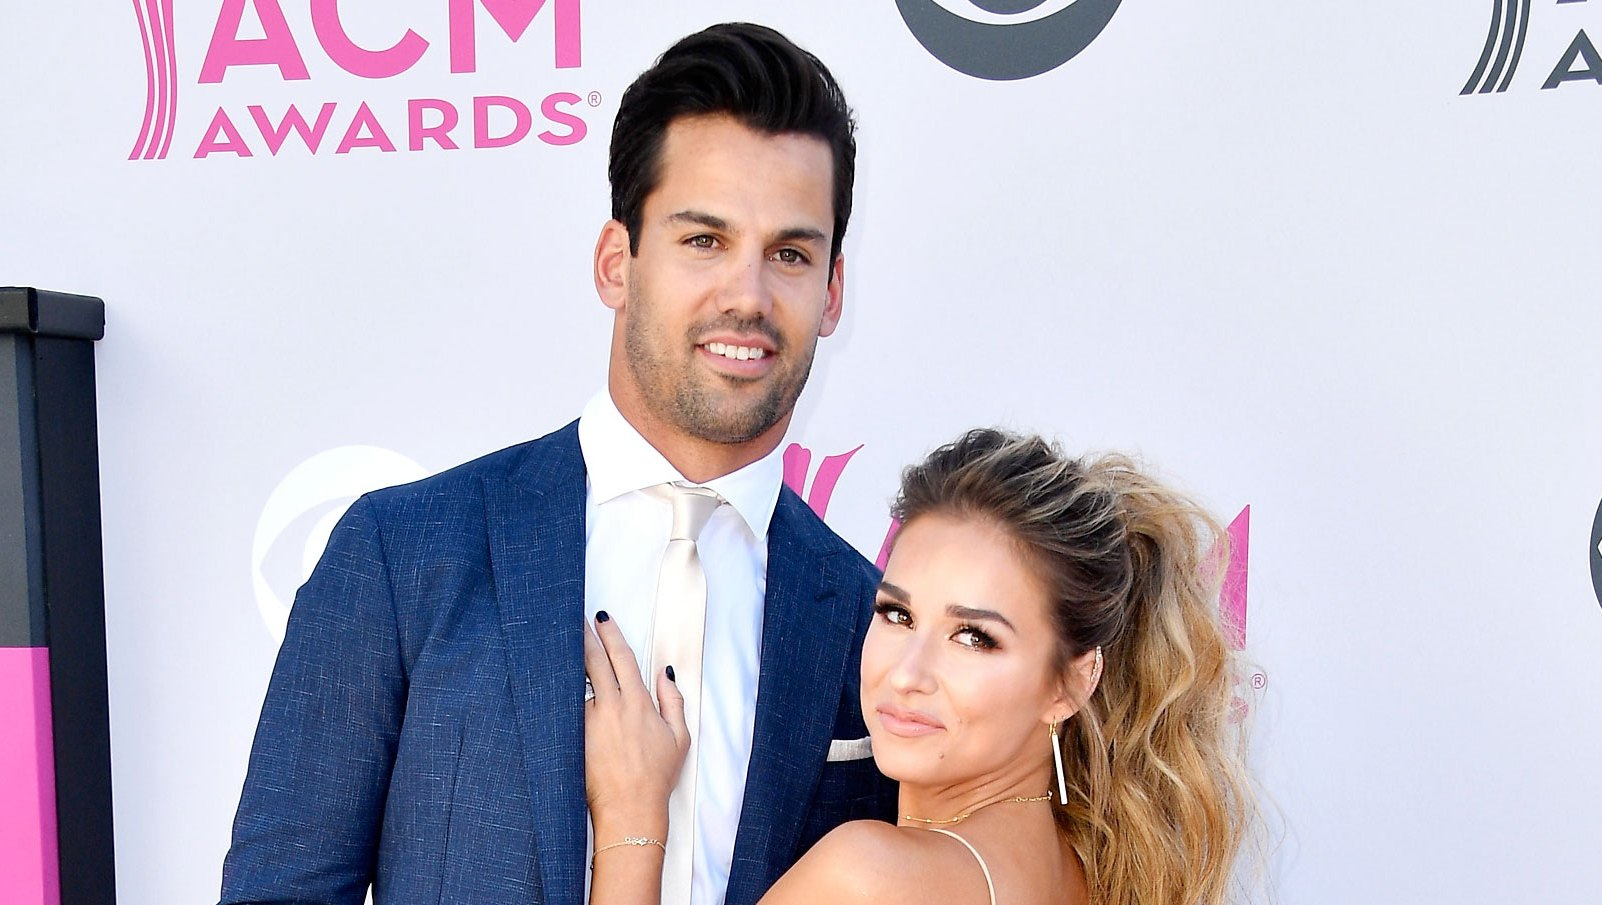 Jessie James Decker Plans To Post More Nudes Eric Decker